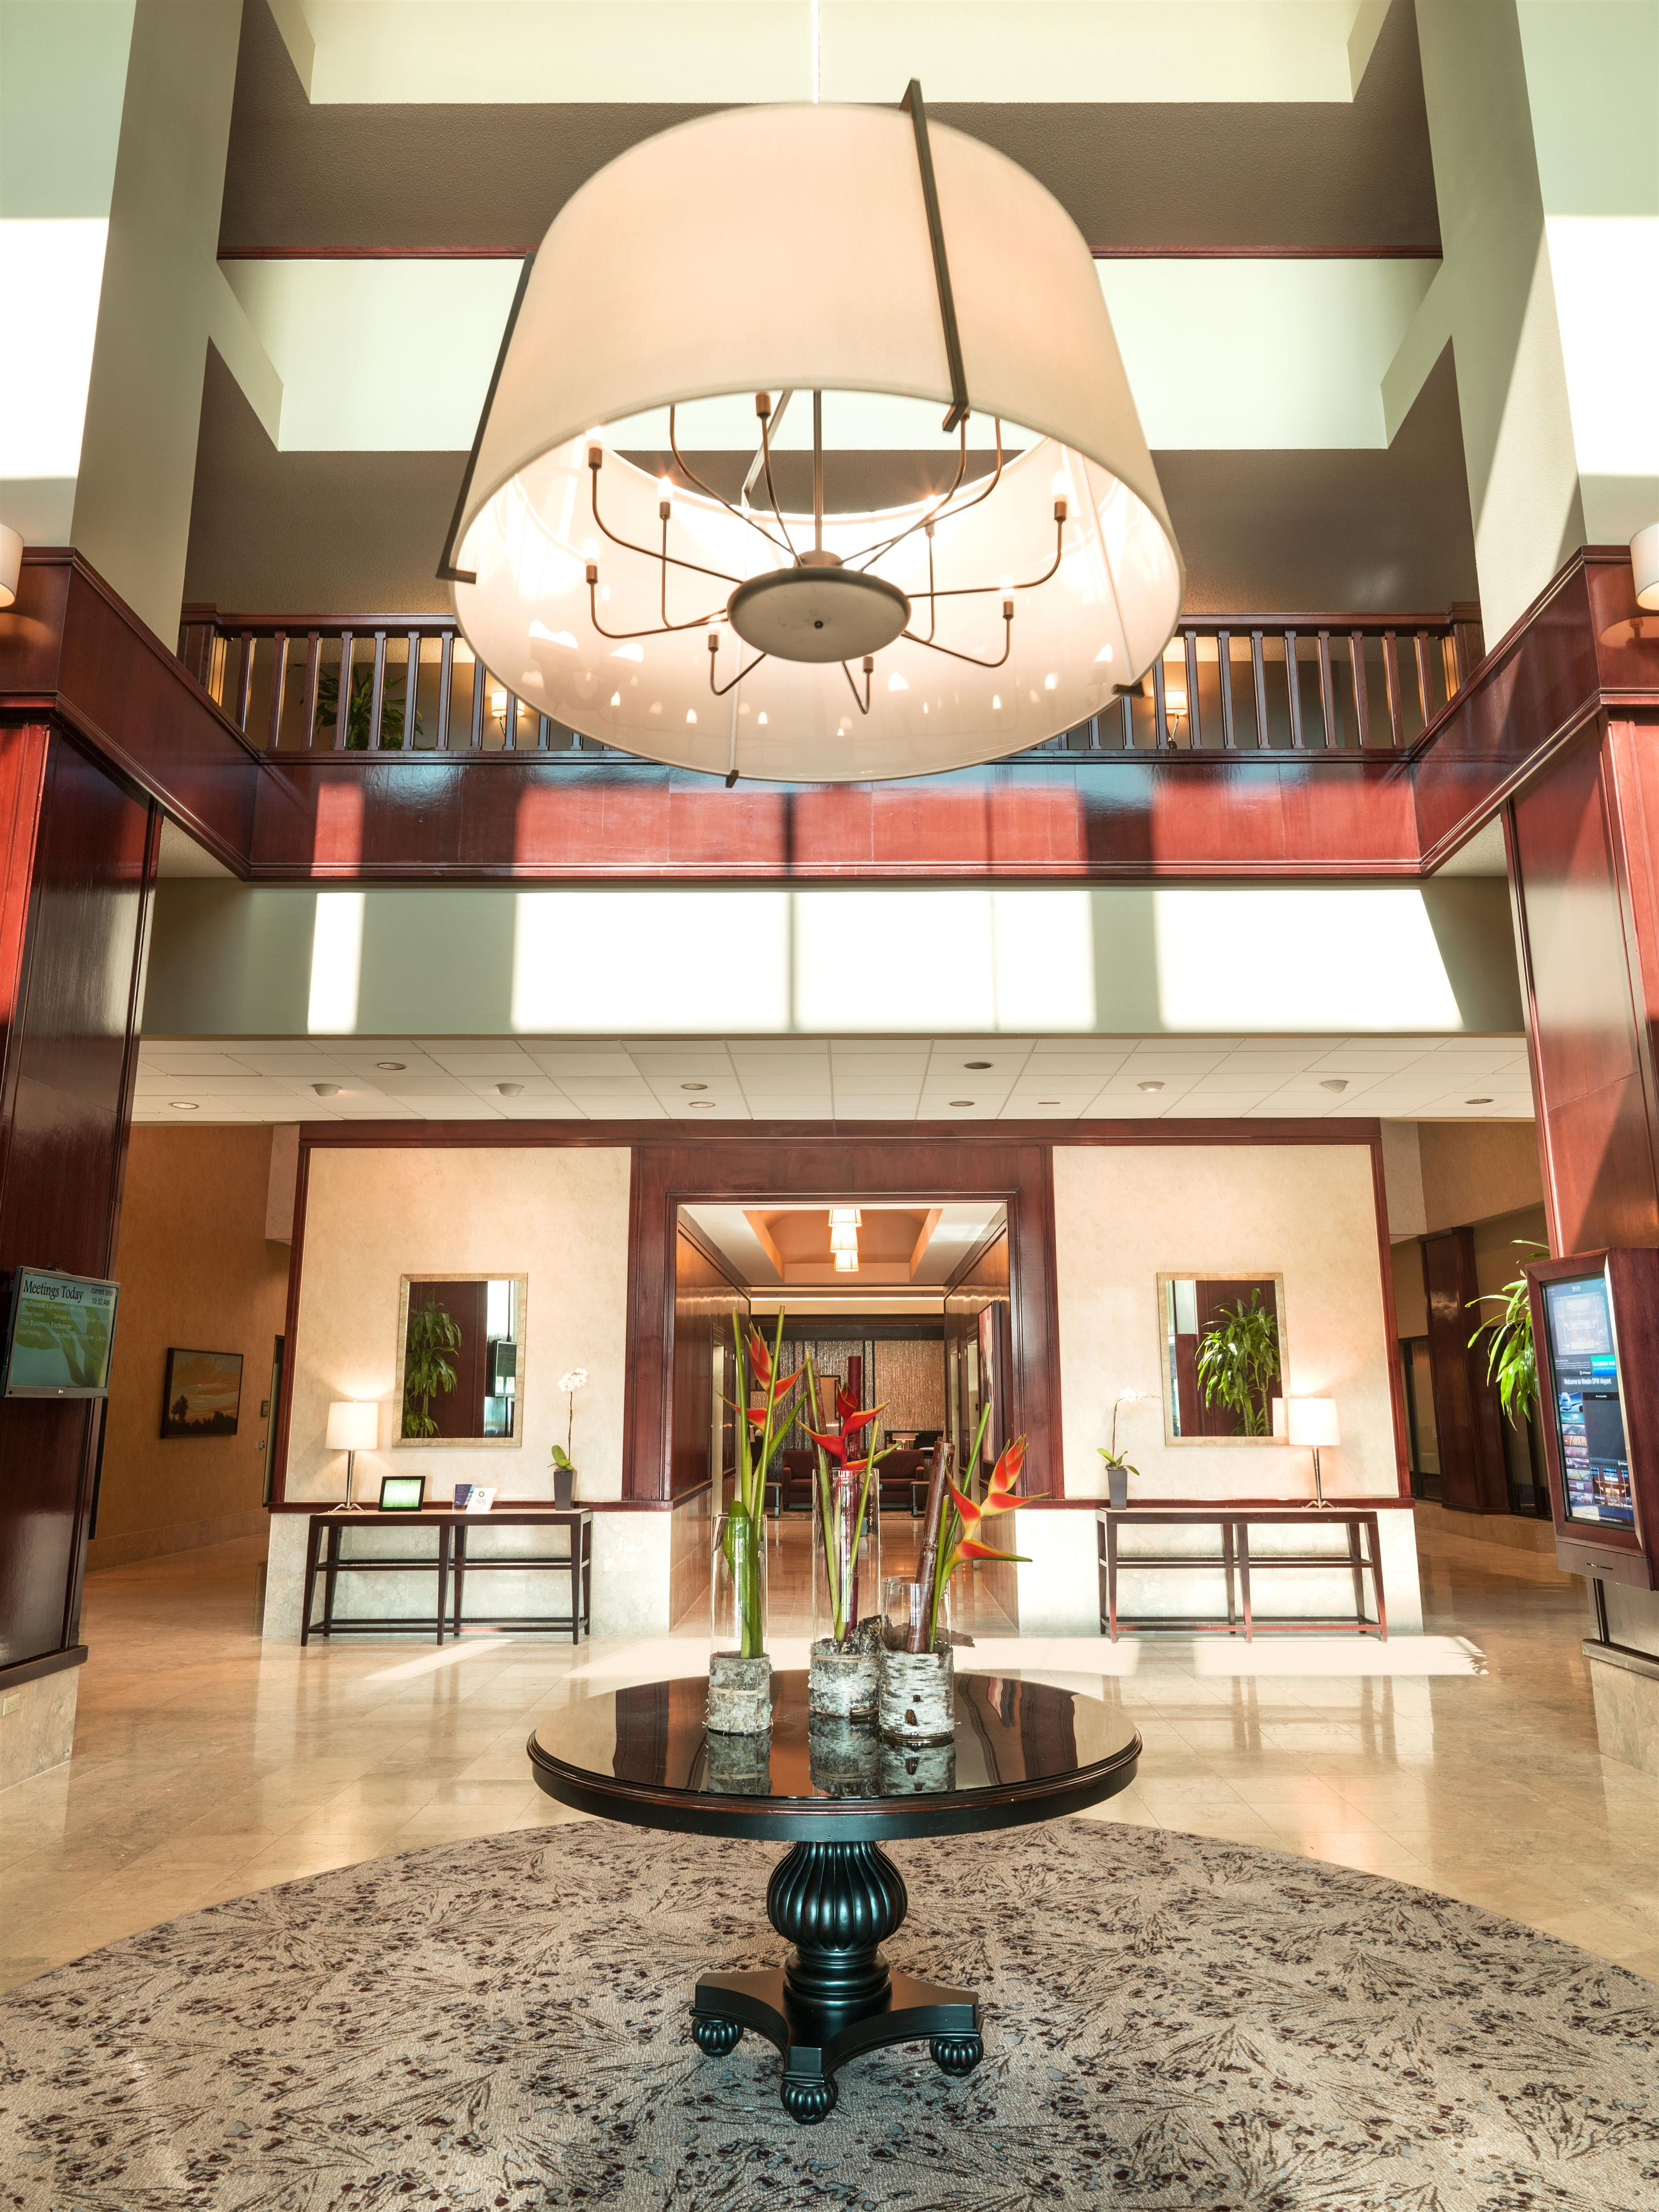 The westin dallas fort worth airport coupons near me in for Irving hotel chicago